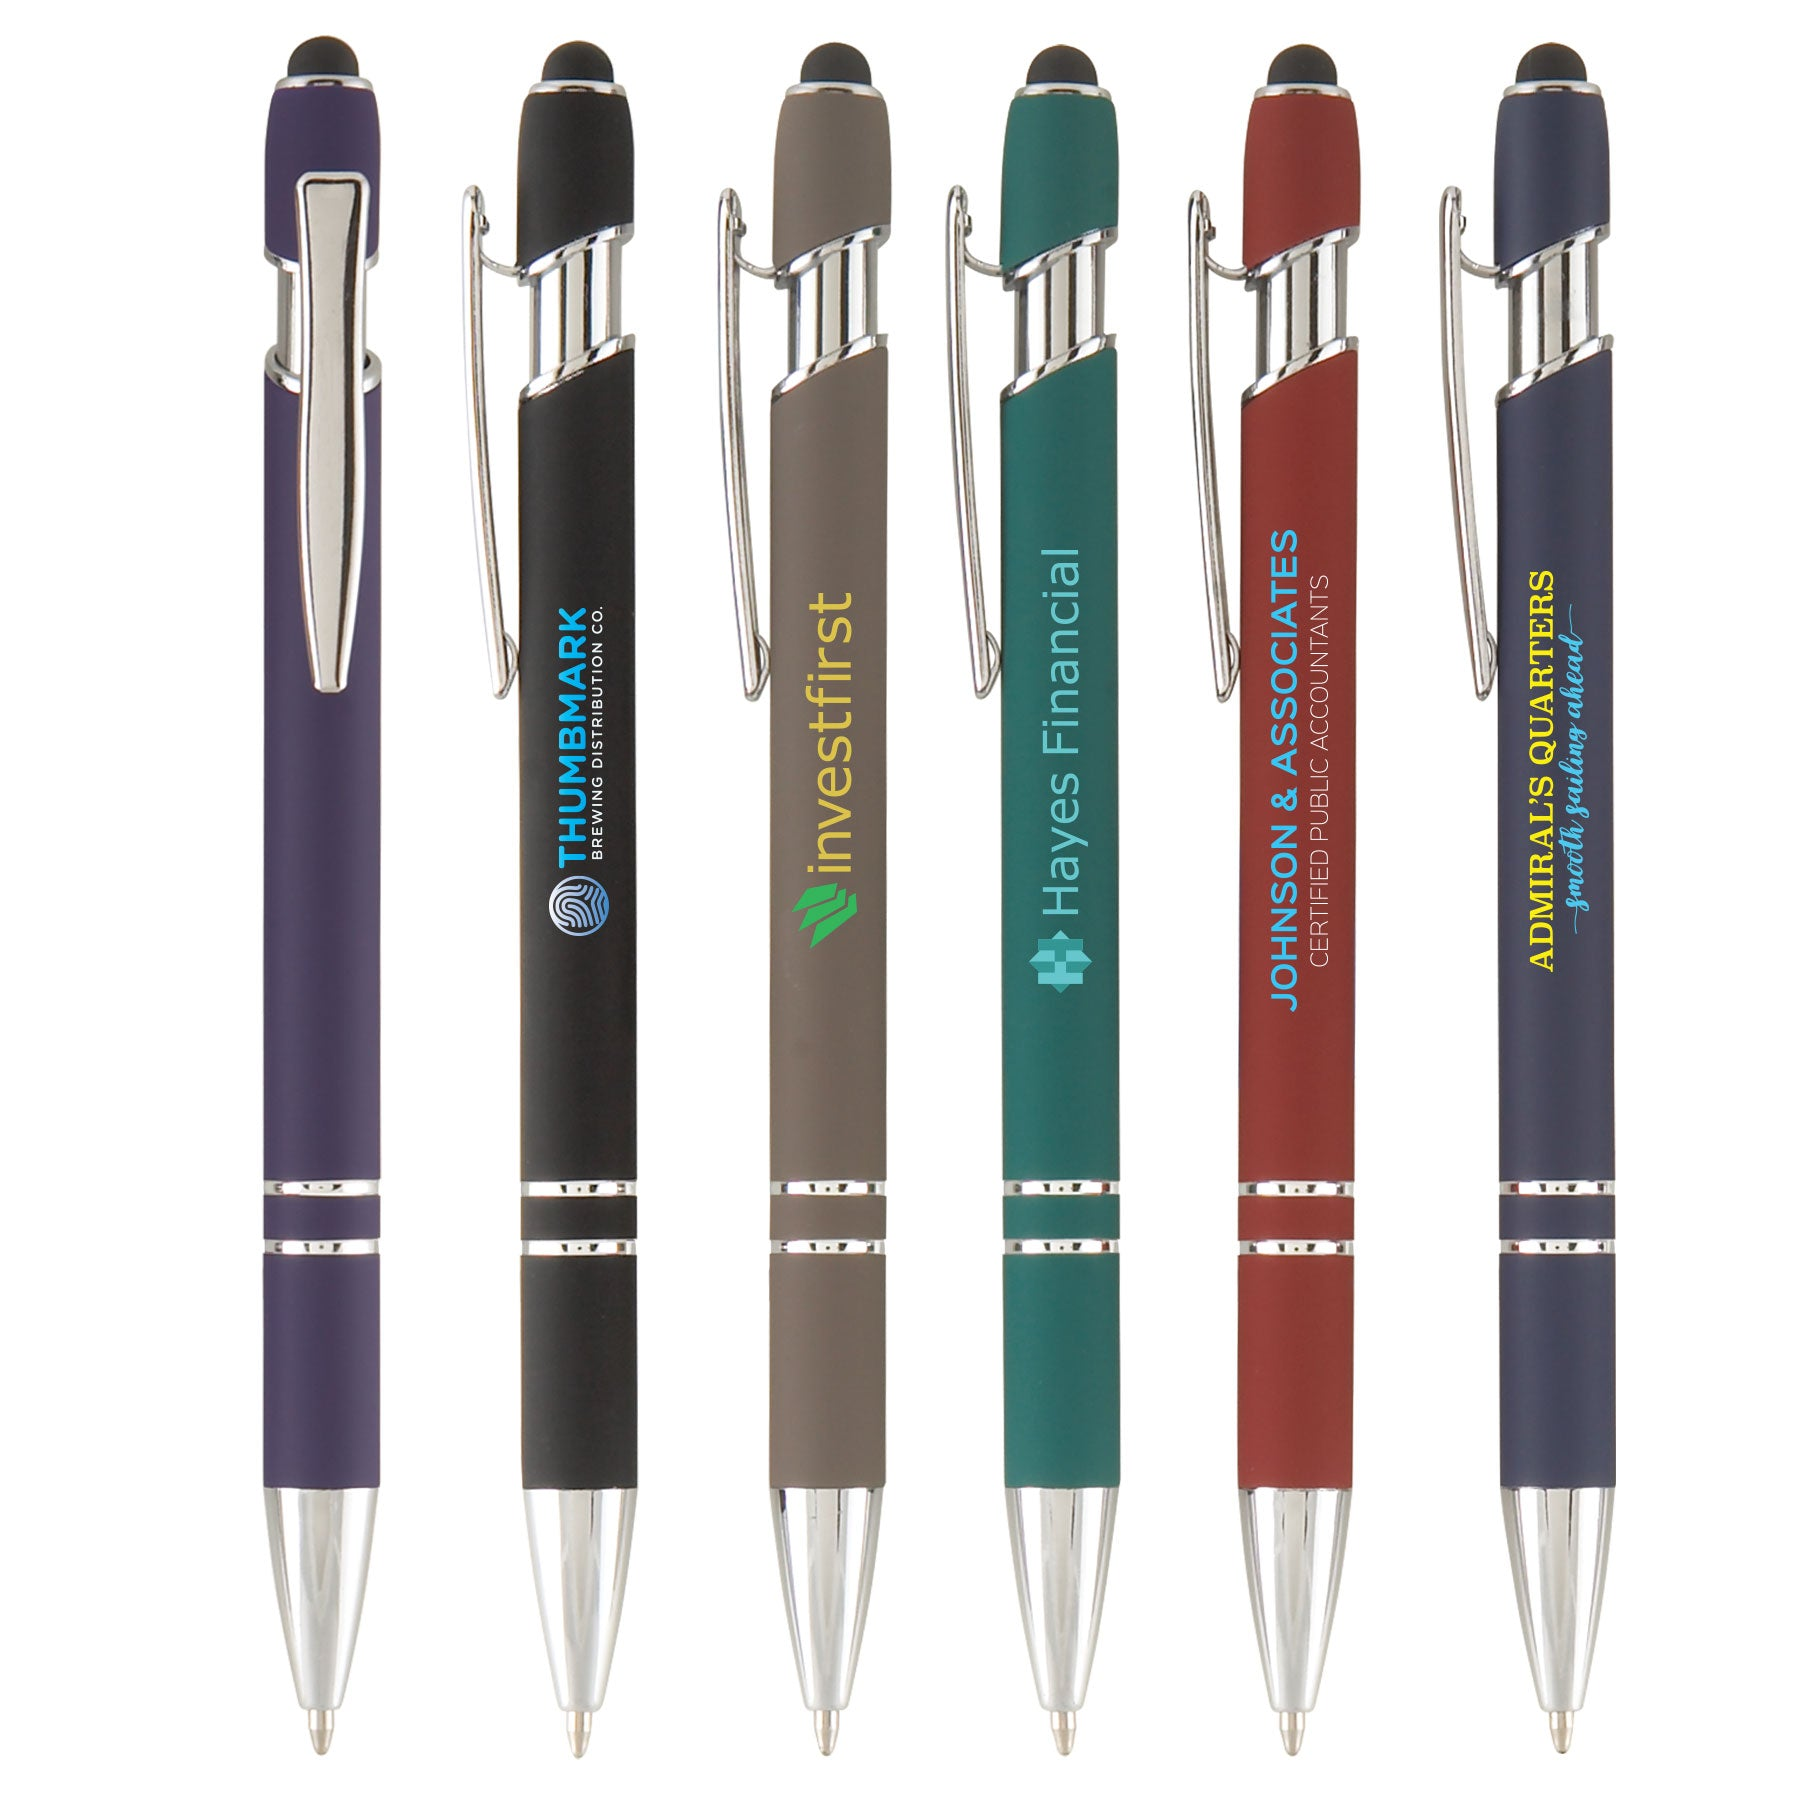 Retractable Metal Pen with Stylus